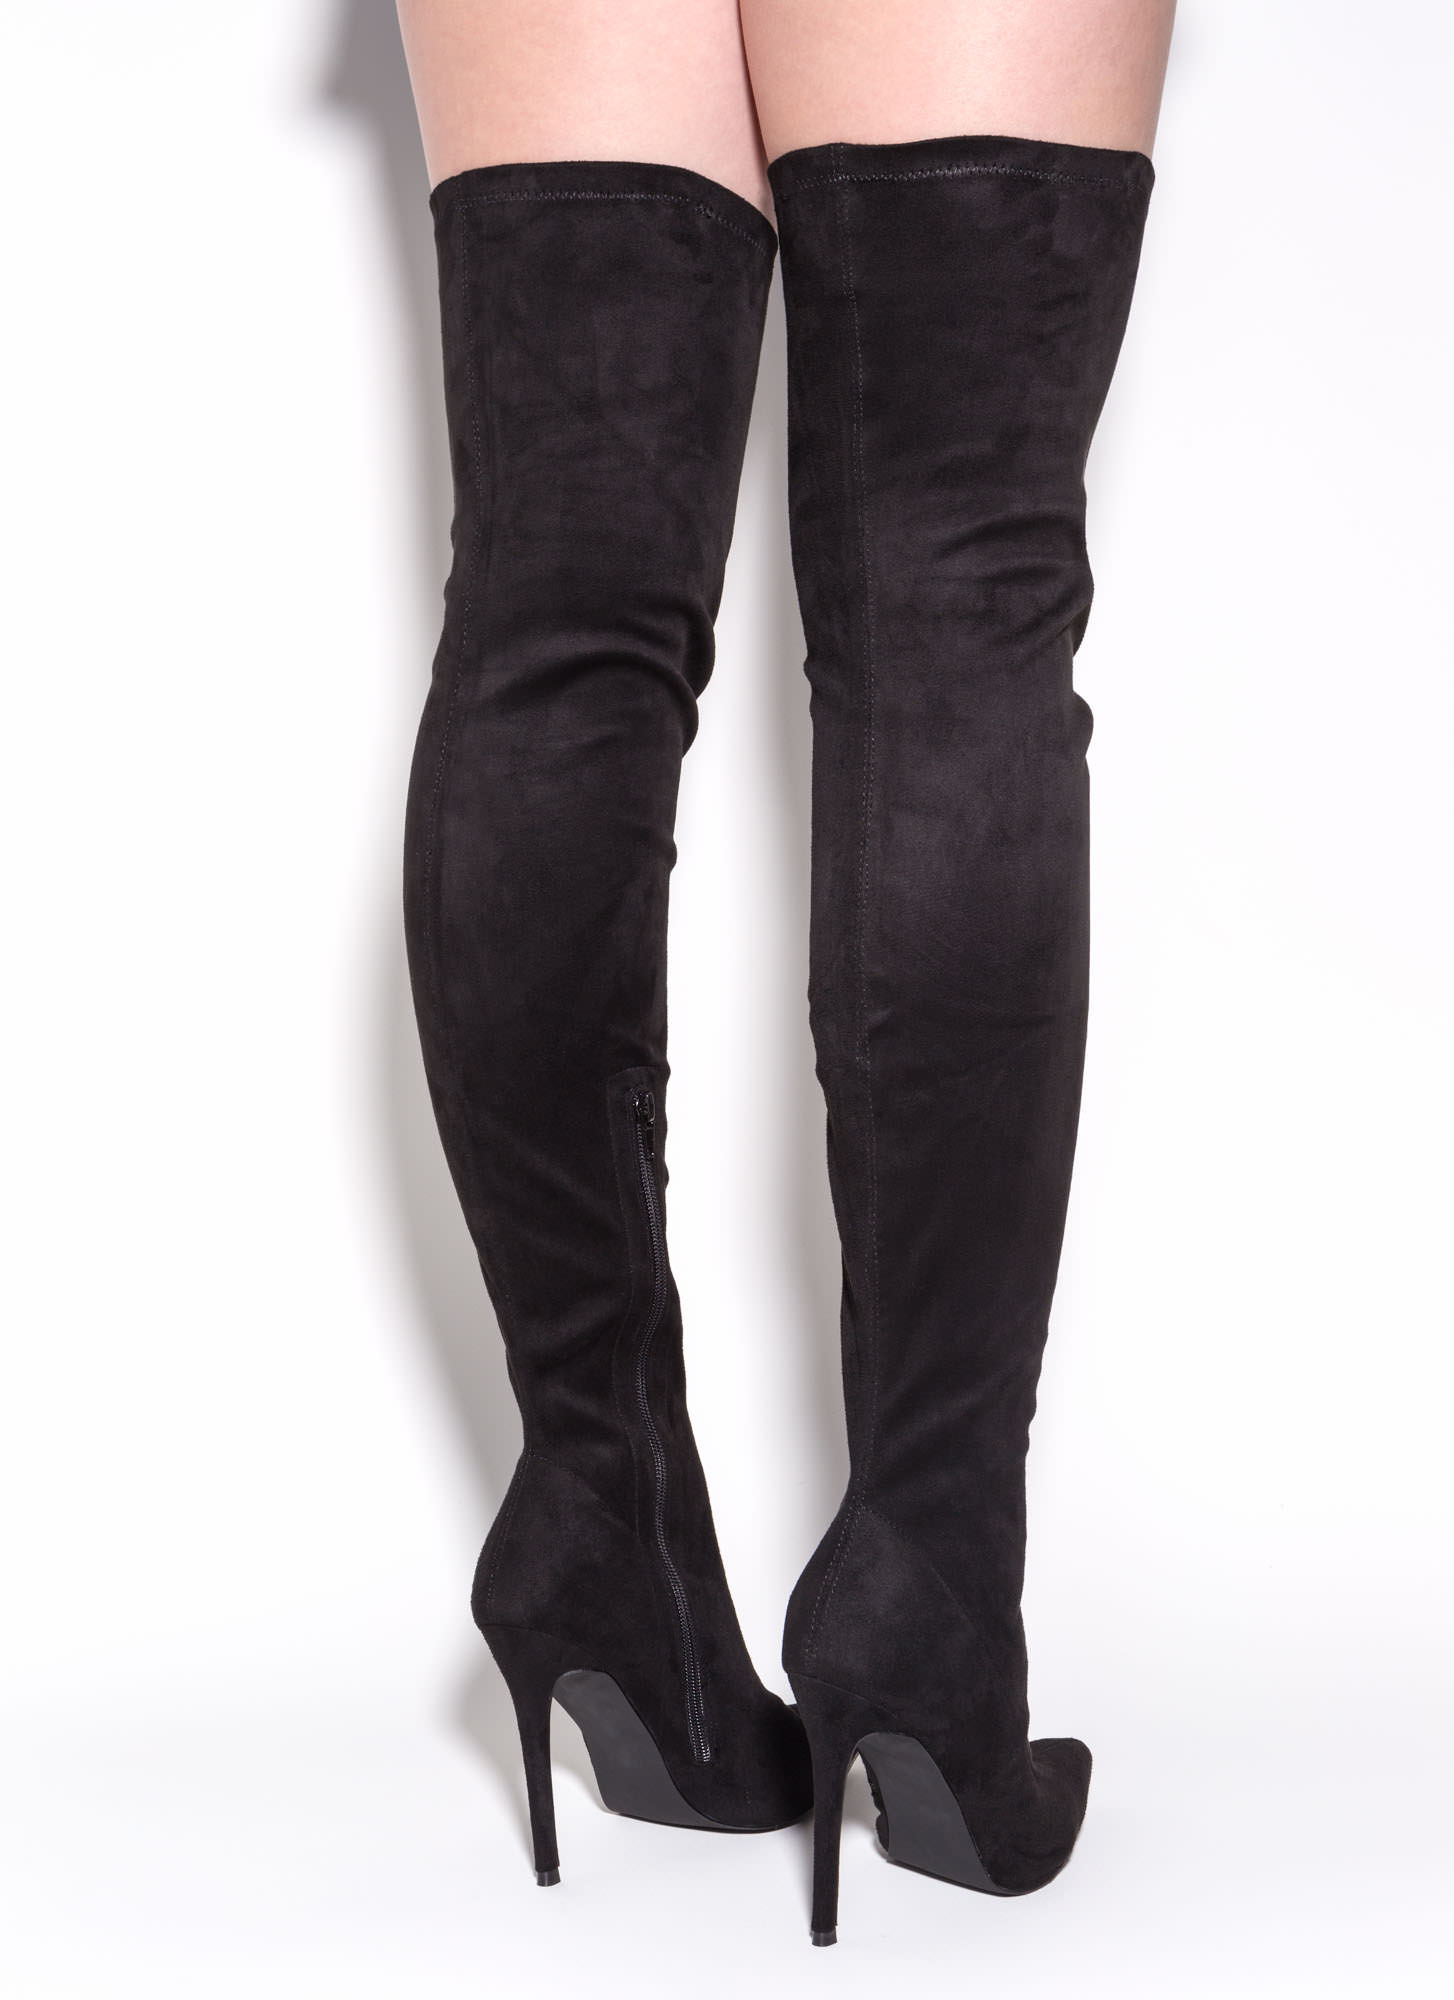 Long Story Chic Thigh High Boots Black Mauve Maroon Olive